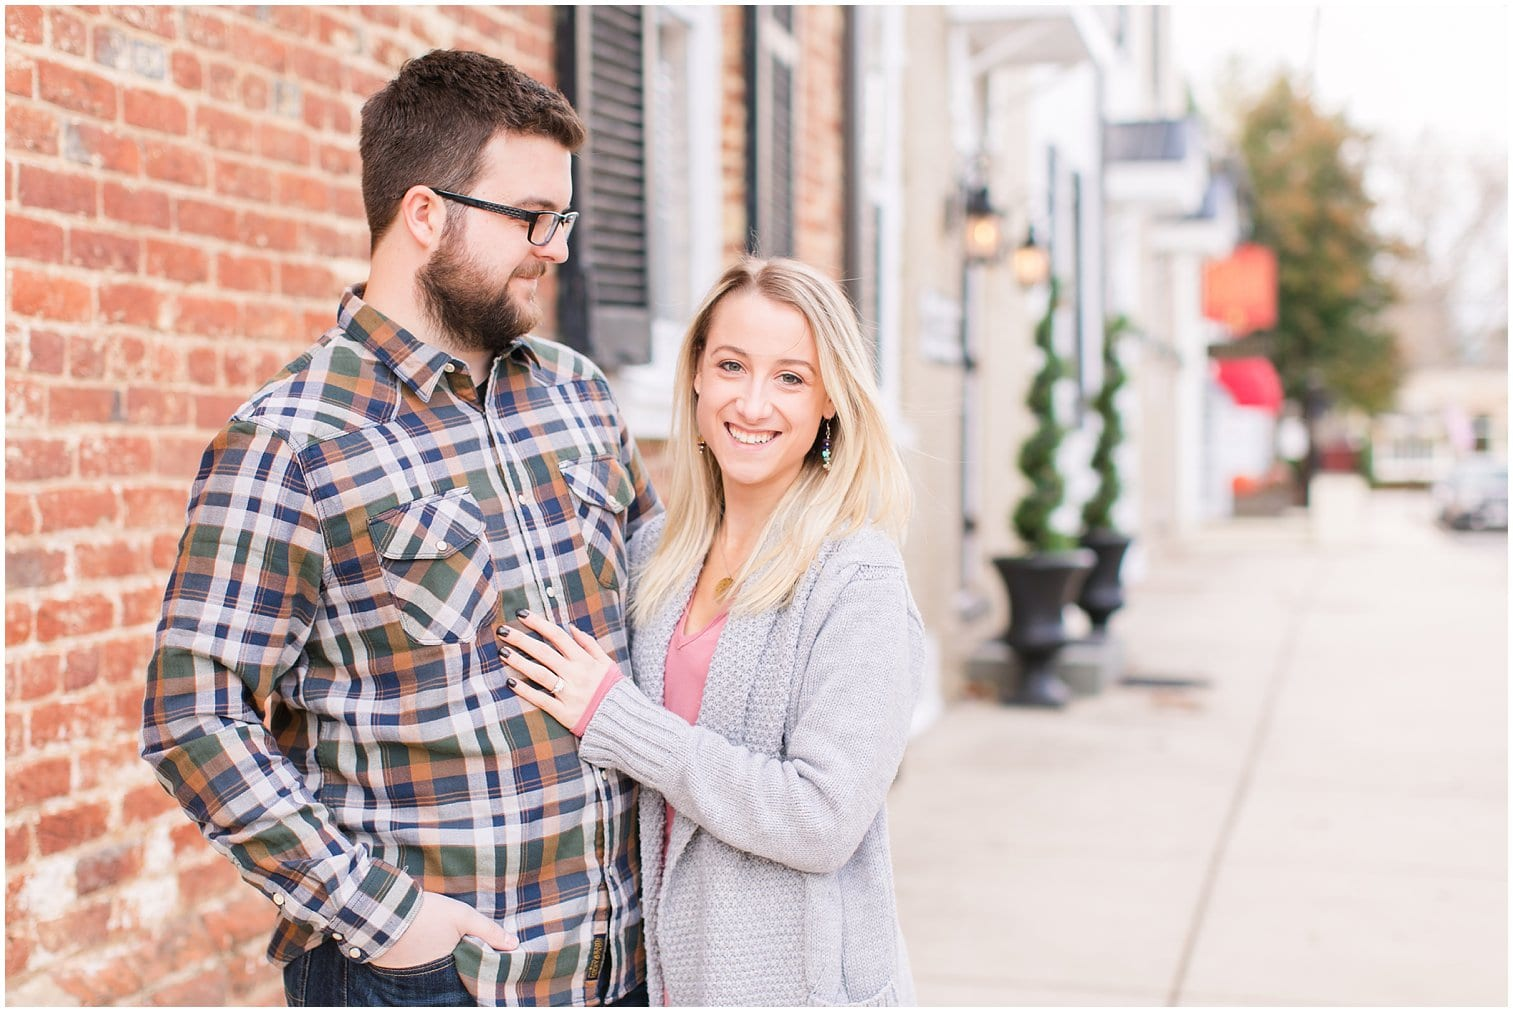 Downtown Middleburg Engagement Photos Virginia Wedding Photographer Megan Kelsey Photography Blair & Mike-3.jpg